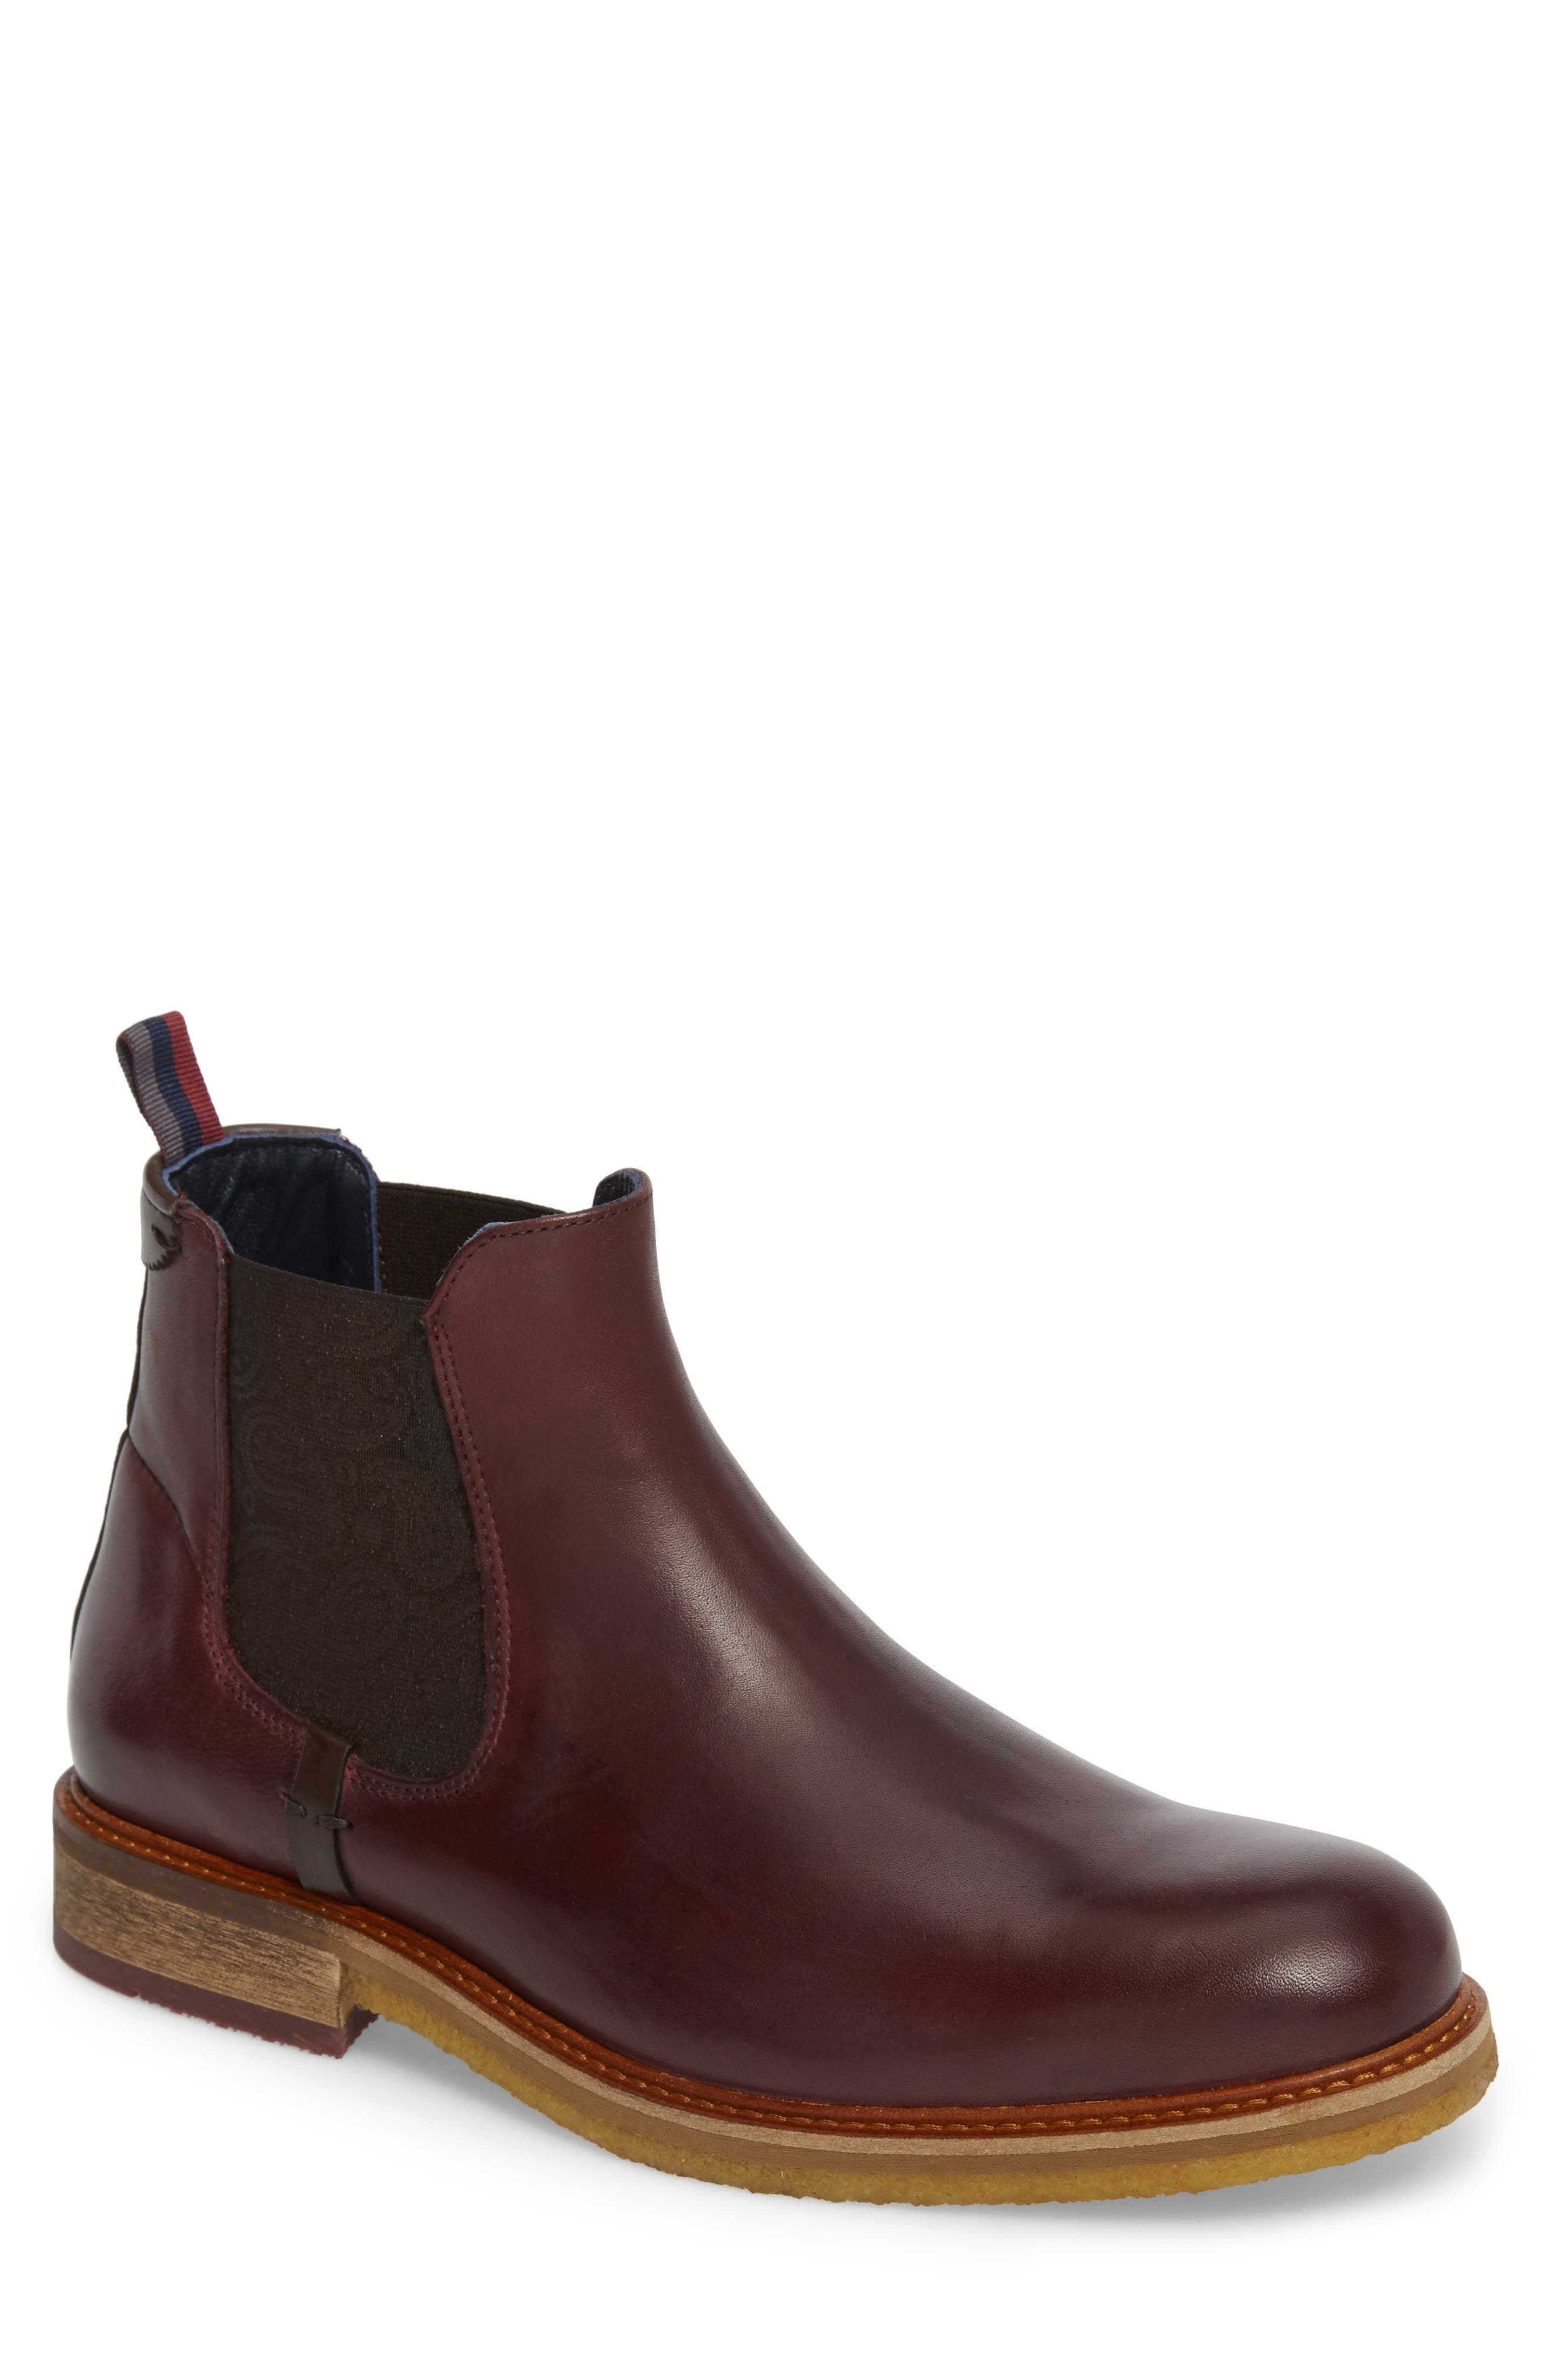 Bronzo Chelsea Boot,                         Main,                         color, Dark Red Leather